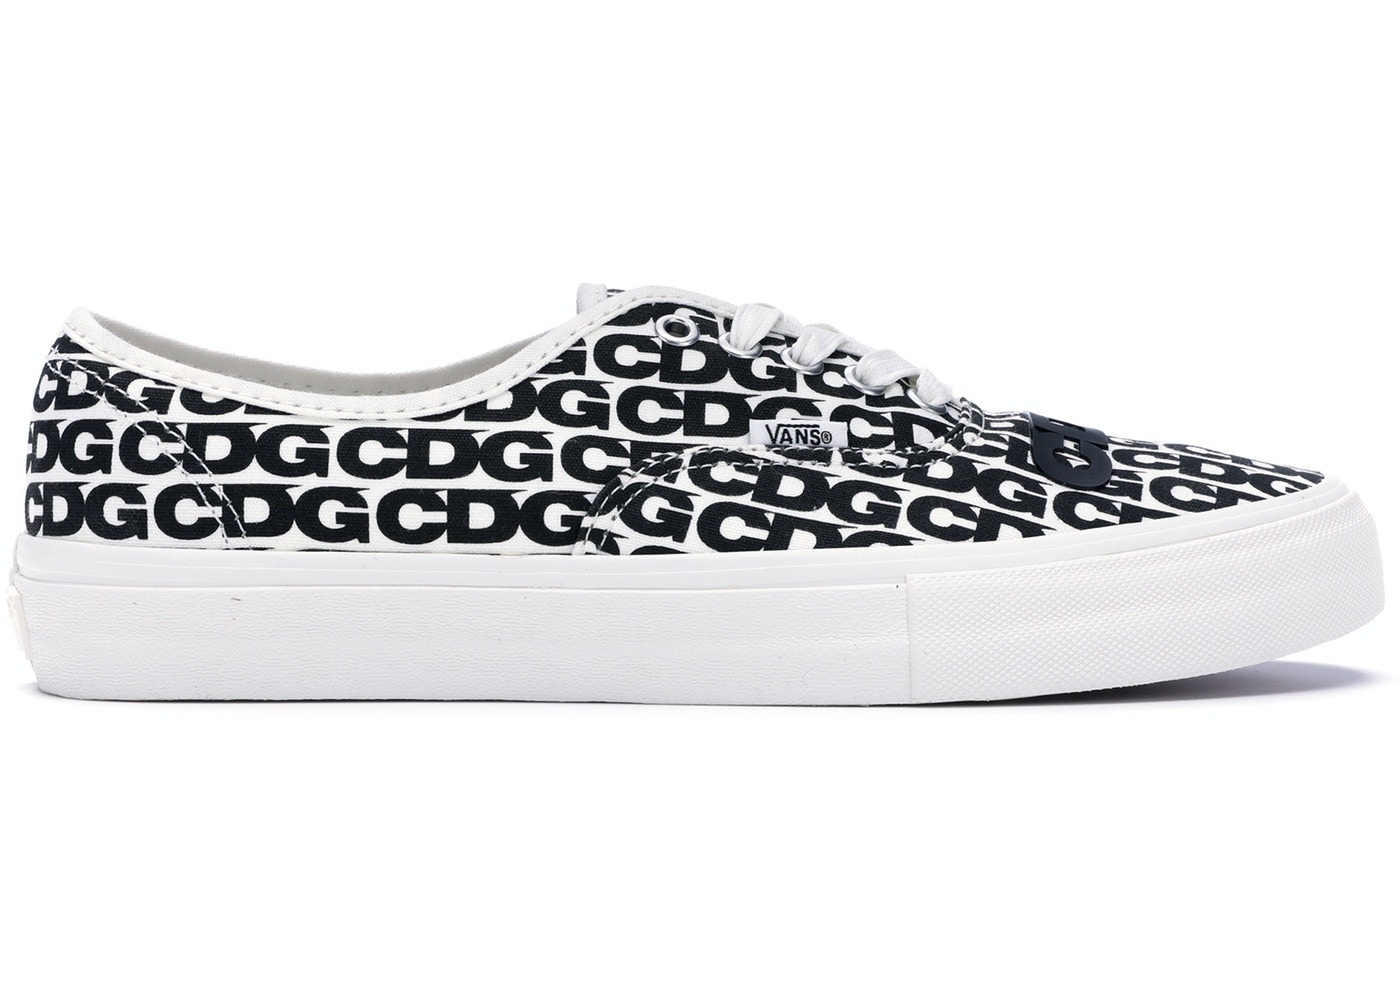 new appearance low cost promo code Vans Authentic Comme des Garcons